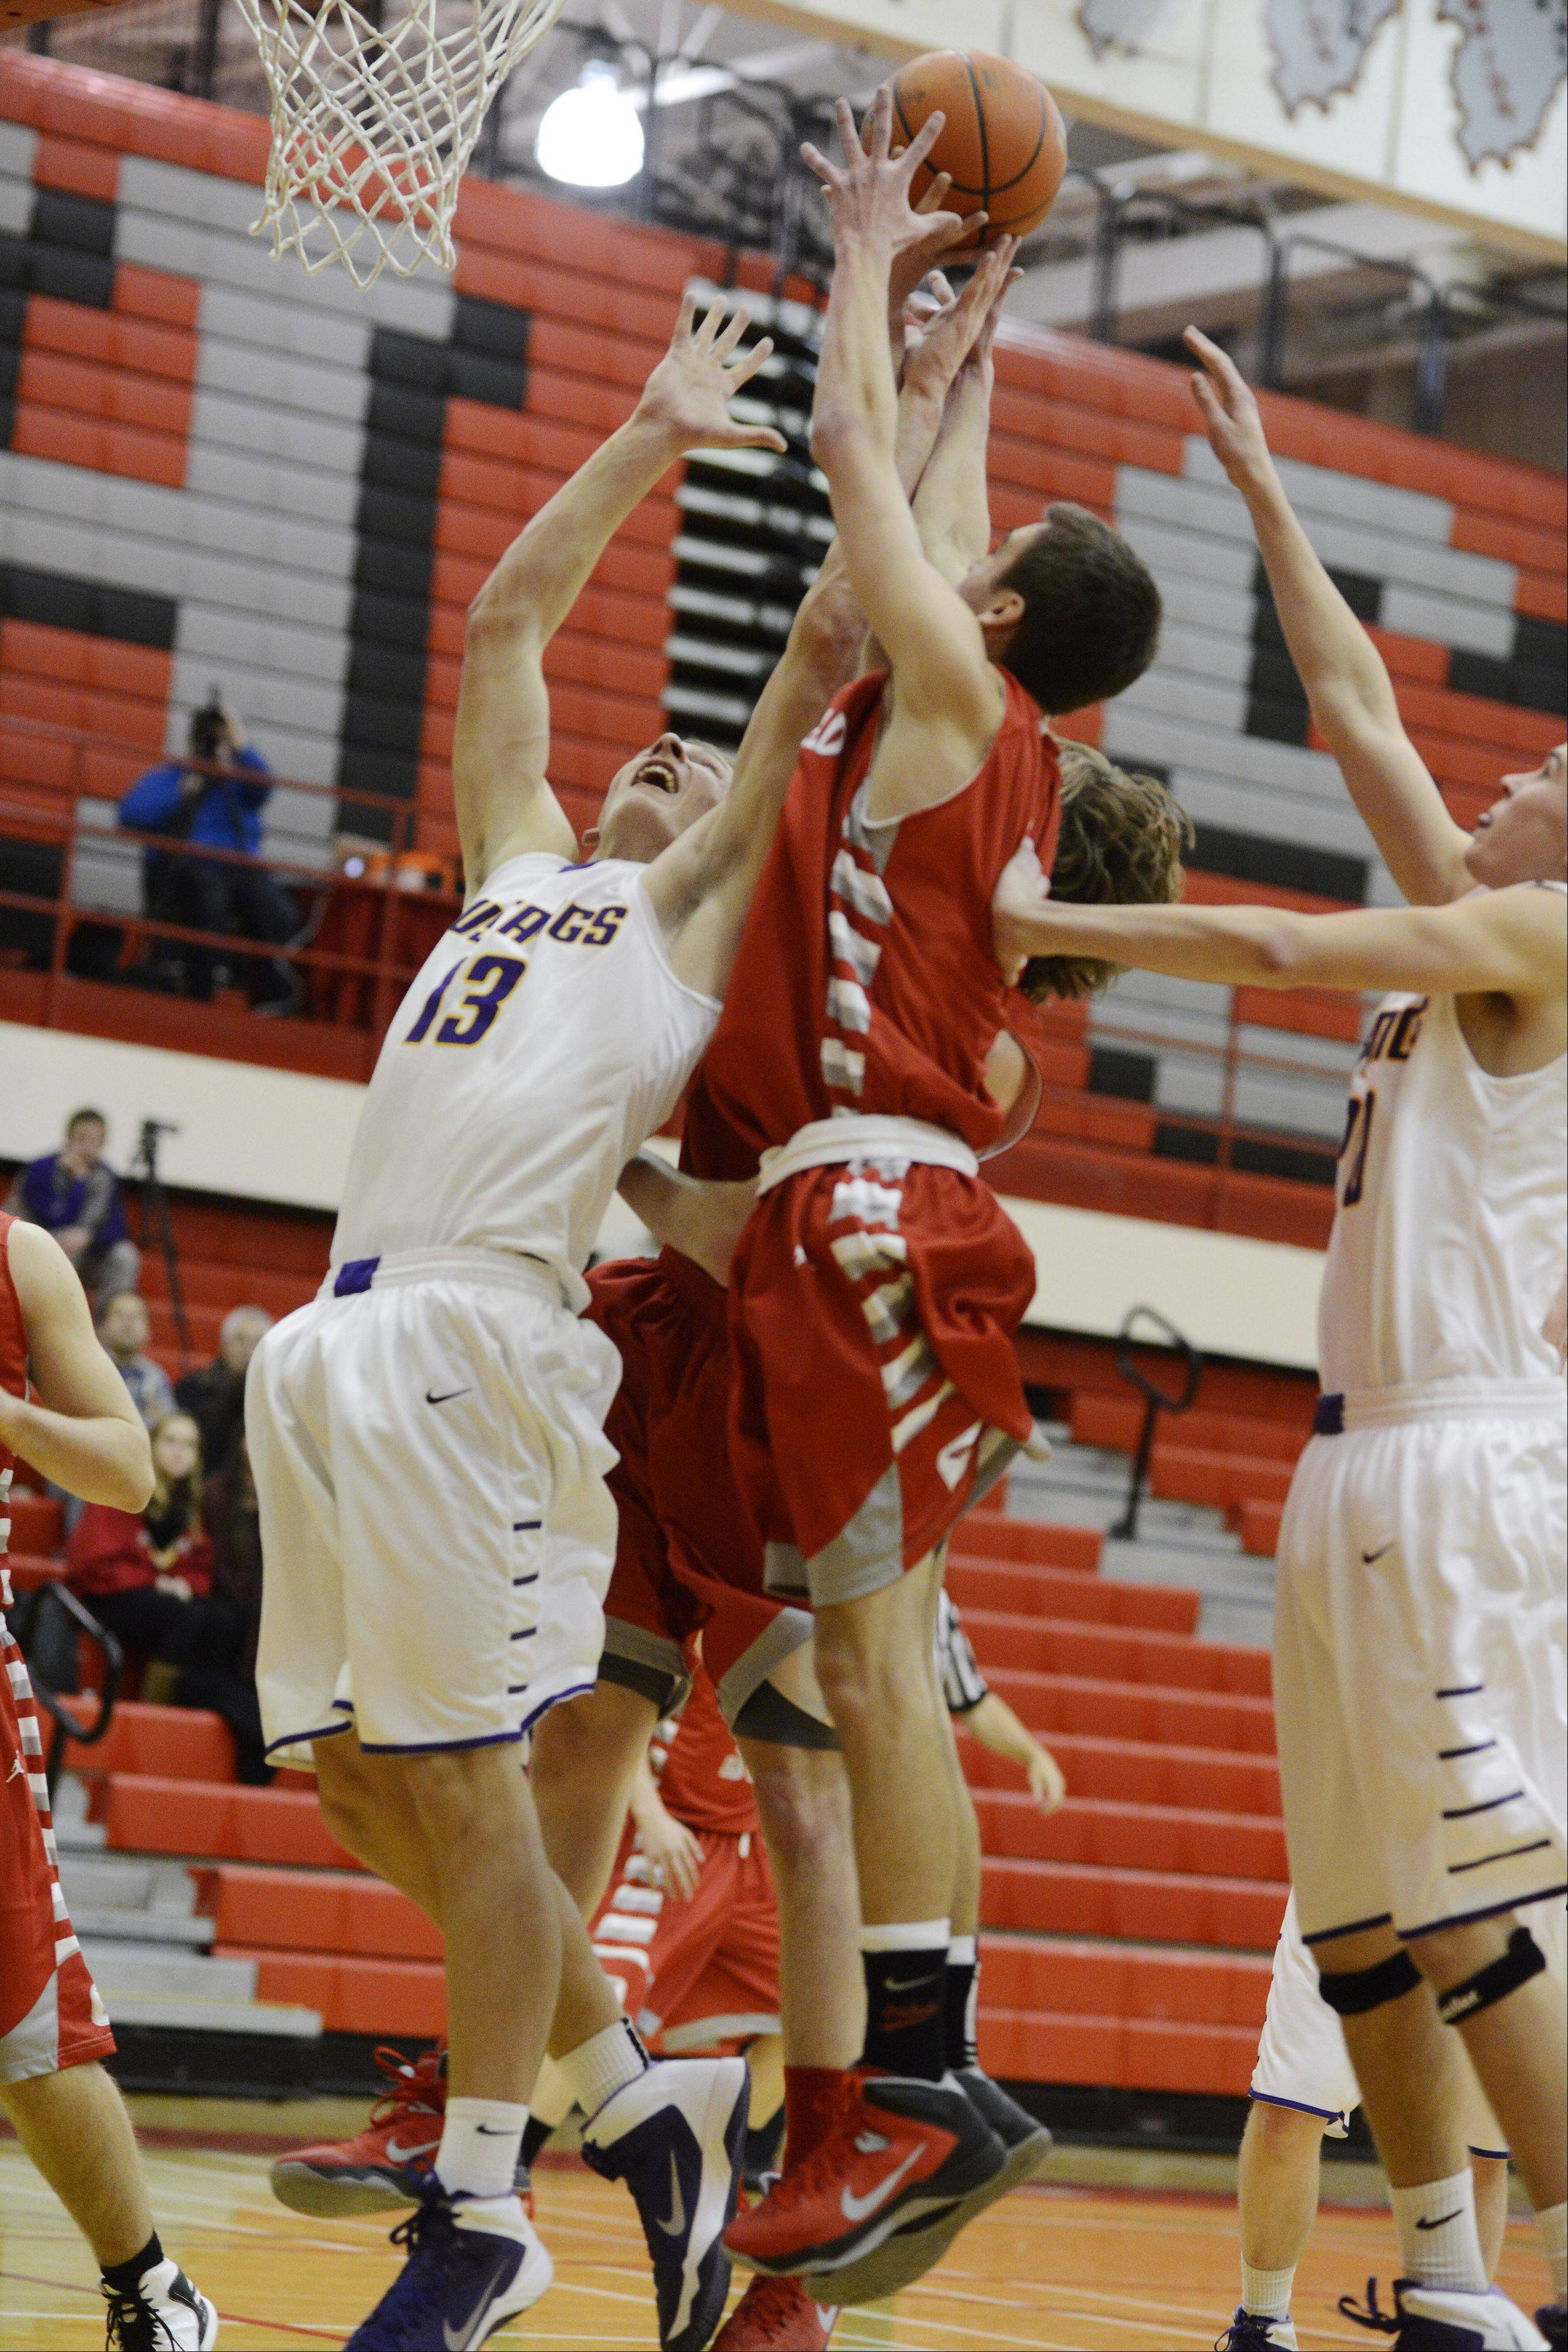 Rolling Meadows� Matt Dolan, left, and Pat Kramp, right, leap for a rebound against Deerfield�s Jack Gurvey during Tuesday�s game in Palatine.